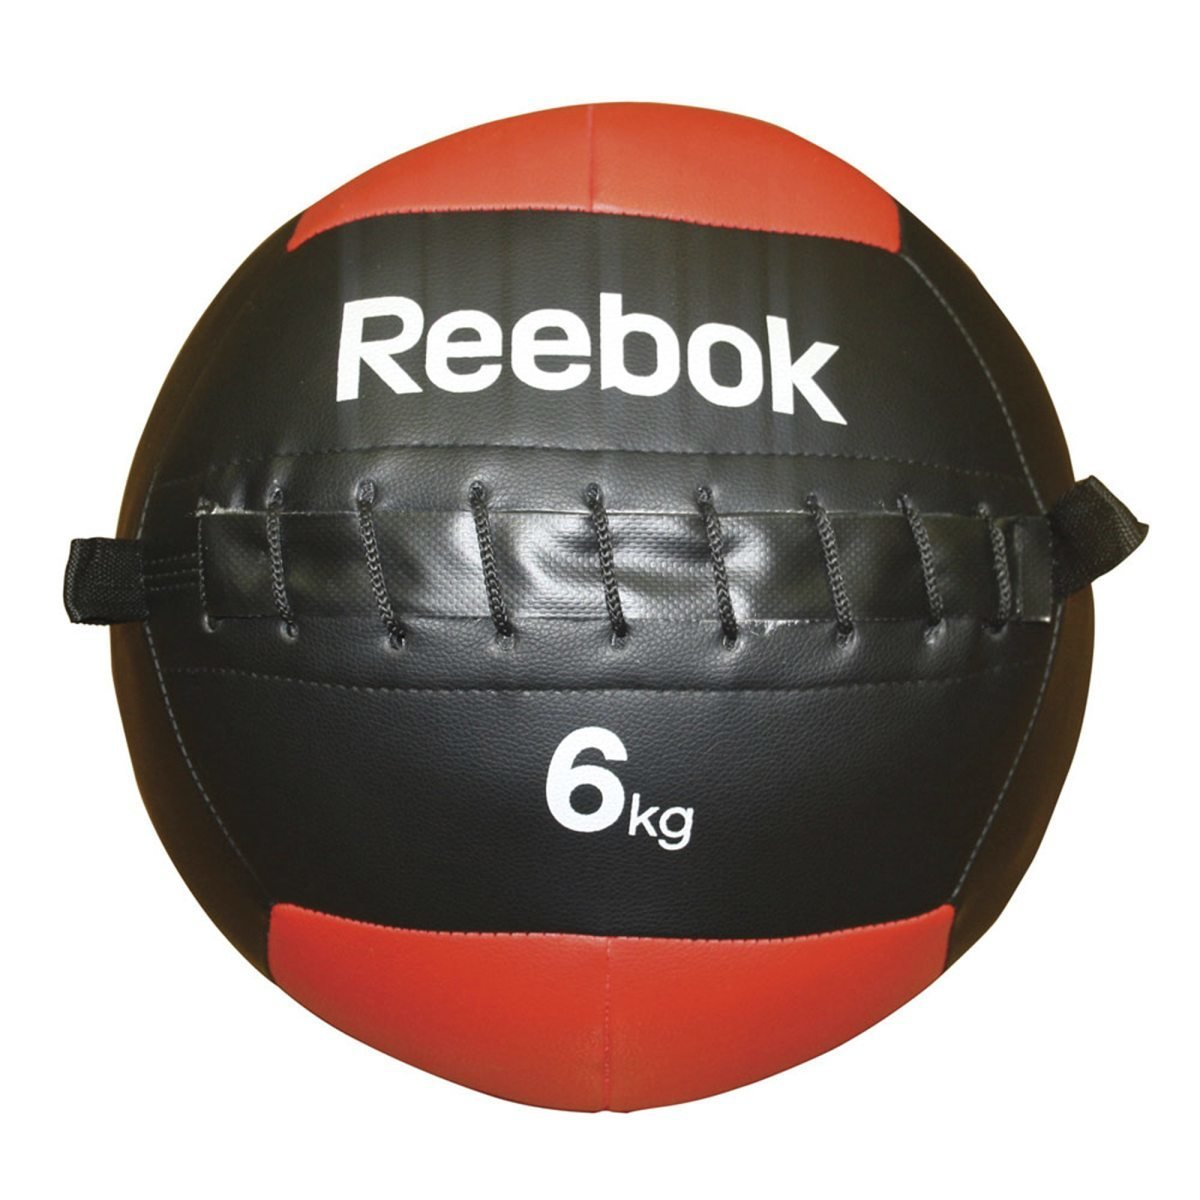 Reebok Studio Softball 10kg